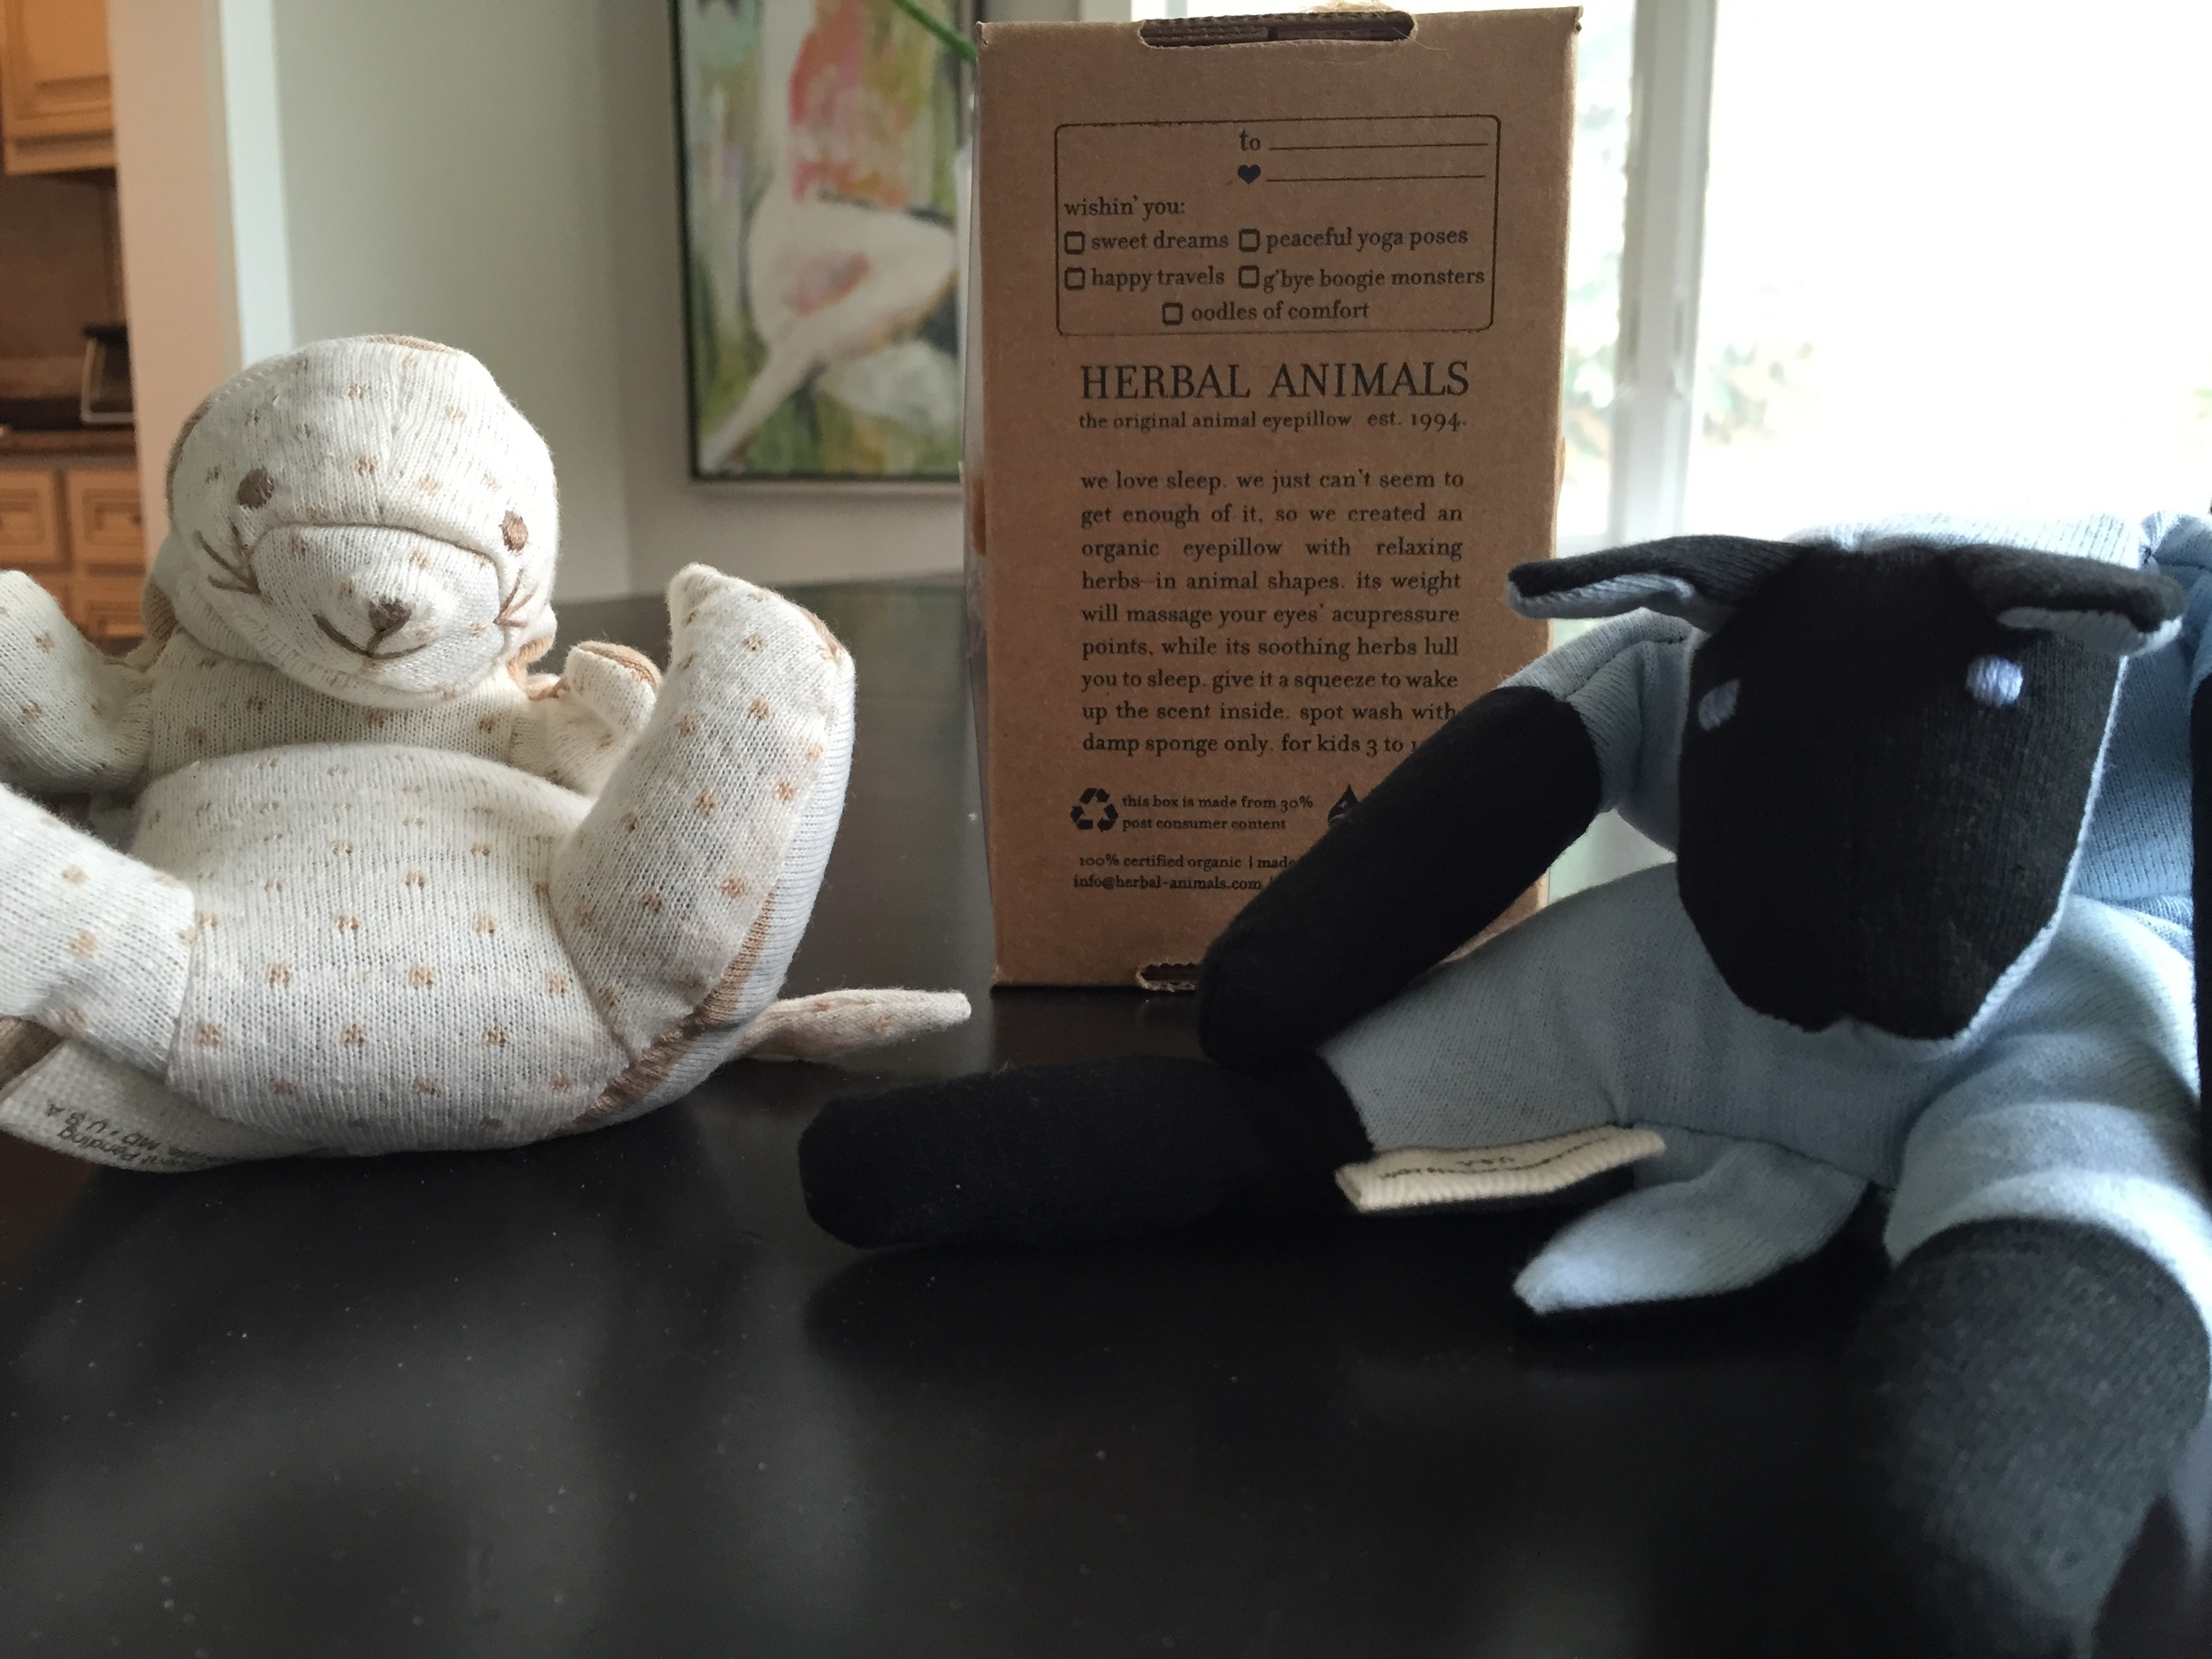 I'm sending these two eye pillows made with lavender to my niece and nephew. I purchased the last of the eye pillows from Love Crate but you can check www.herbal-animals.com for more. Herbal eye masks help my kids calm down for bed and block out the light for a quicker drift off. They make great Back To School  pinches.